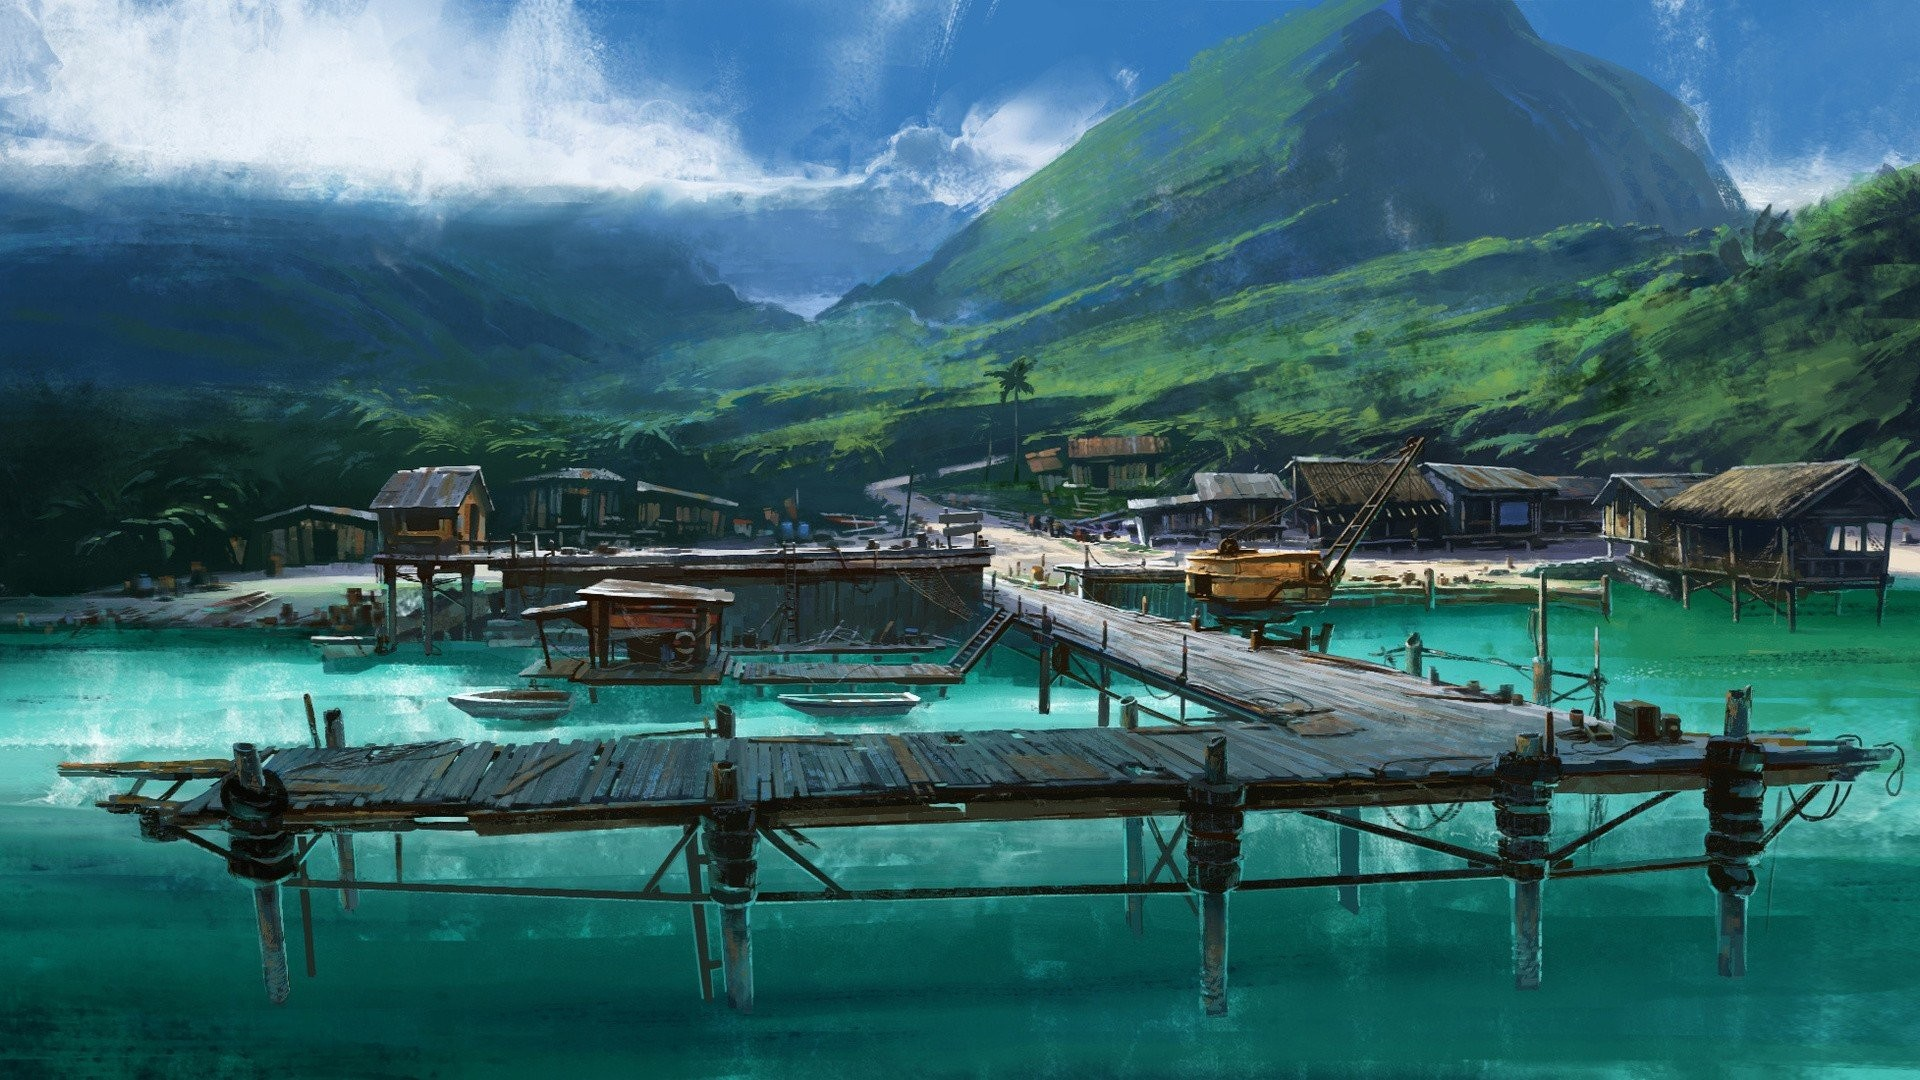 Artwork Boats Dock Drawings Far Cry 3 Landscapes Mountains Sea Tropical  Vehicles